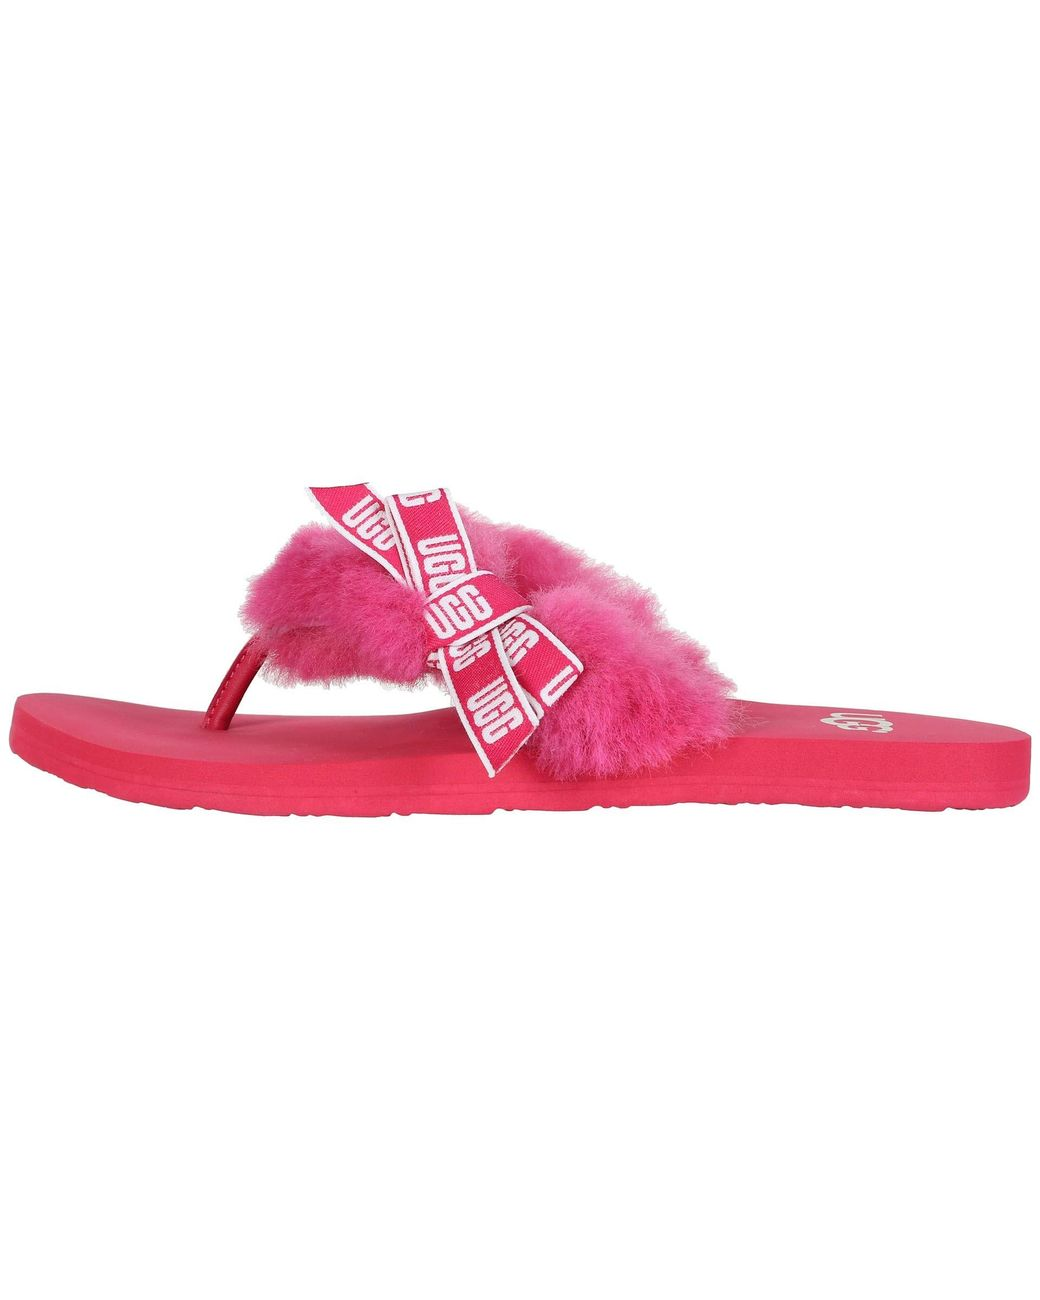 f796c8b83 Lyst - UGG Sunset Graphic (seashell Pink) Women s Sandals in Pink